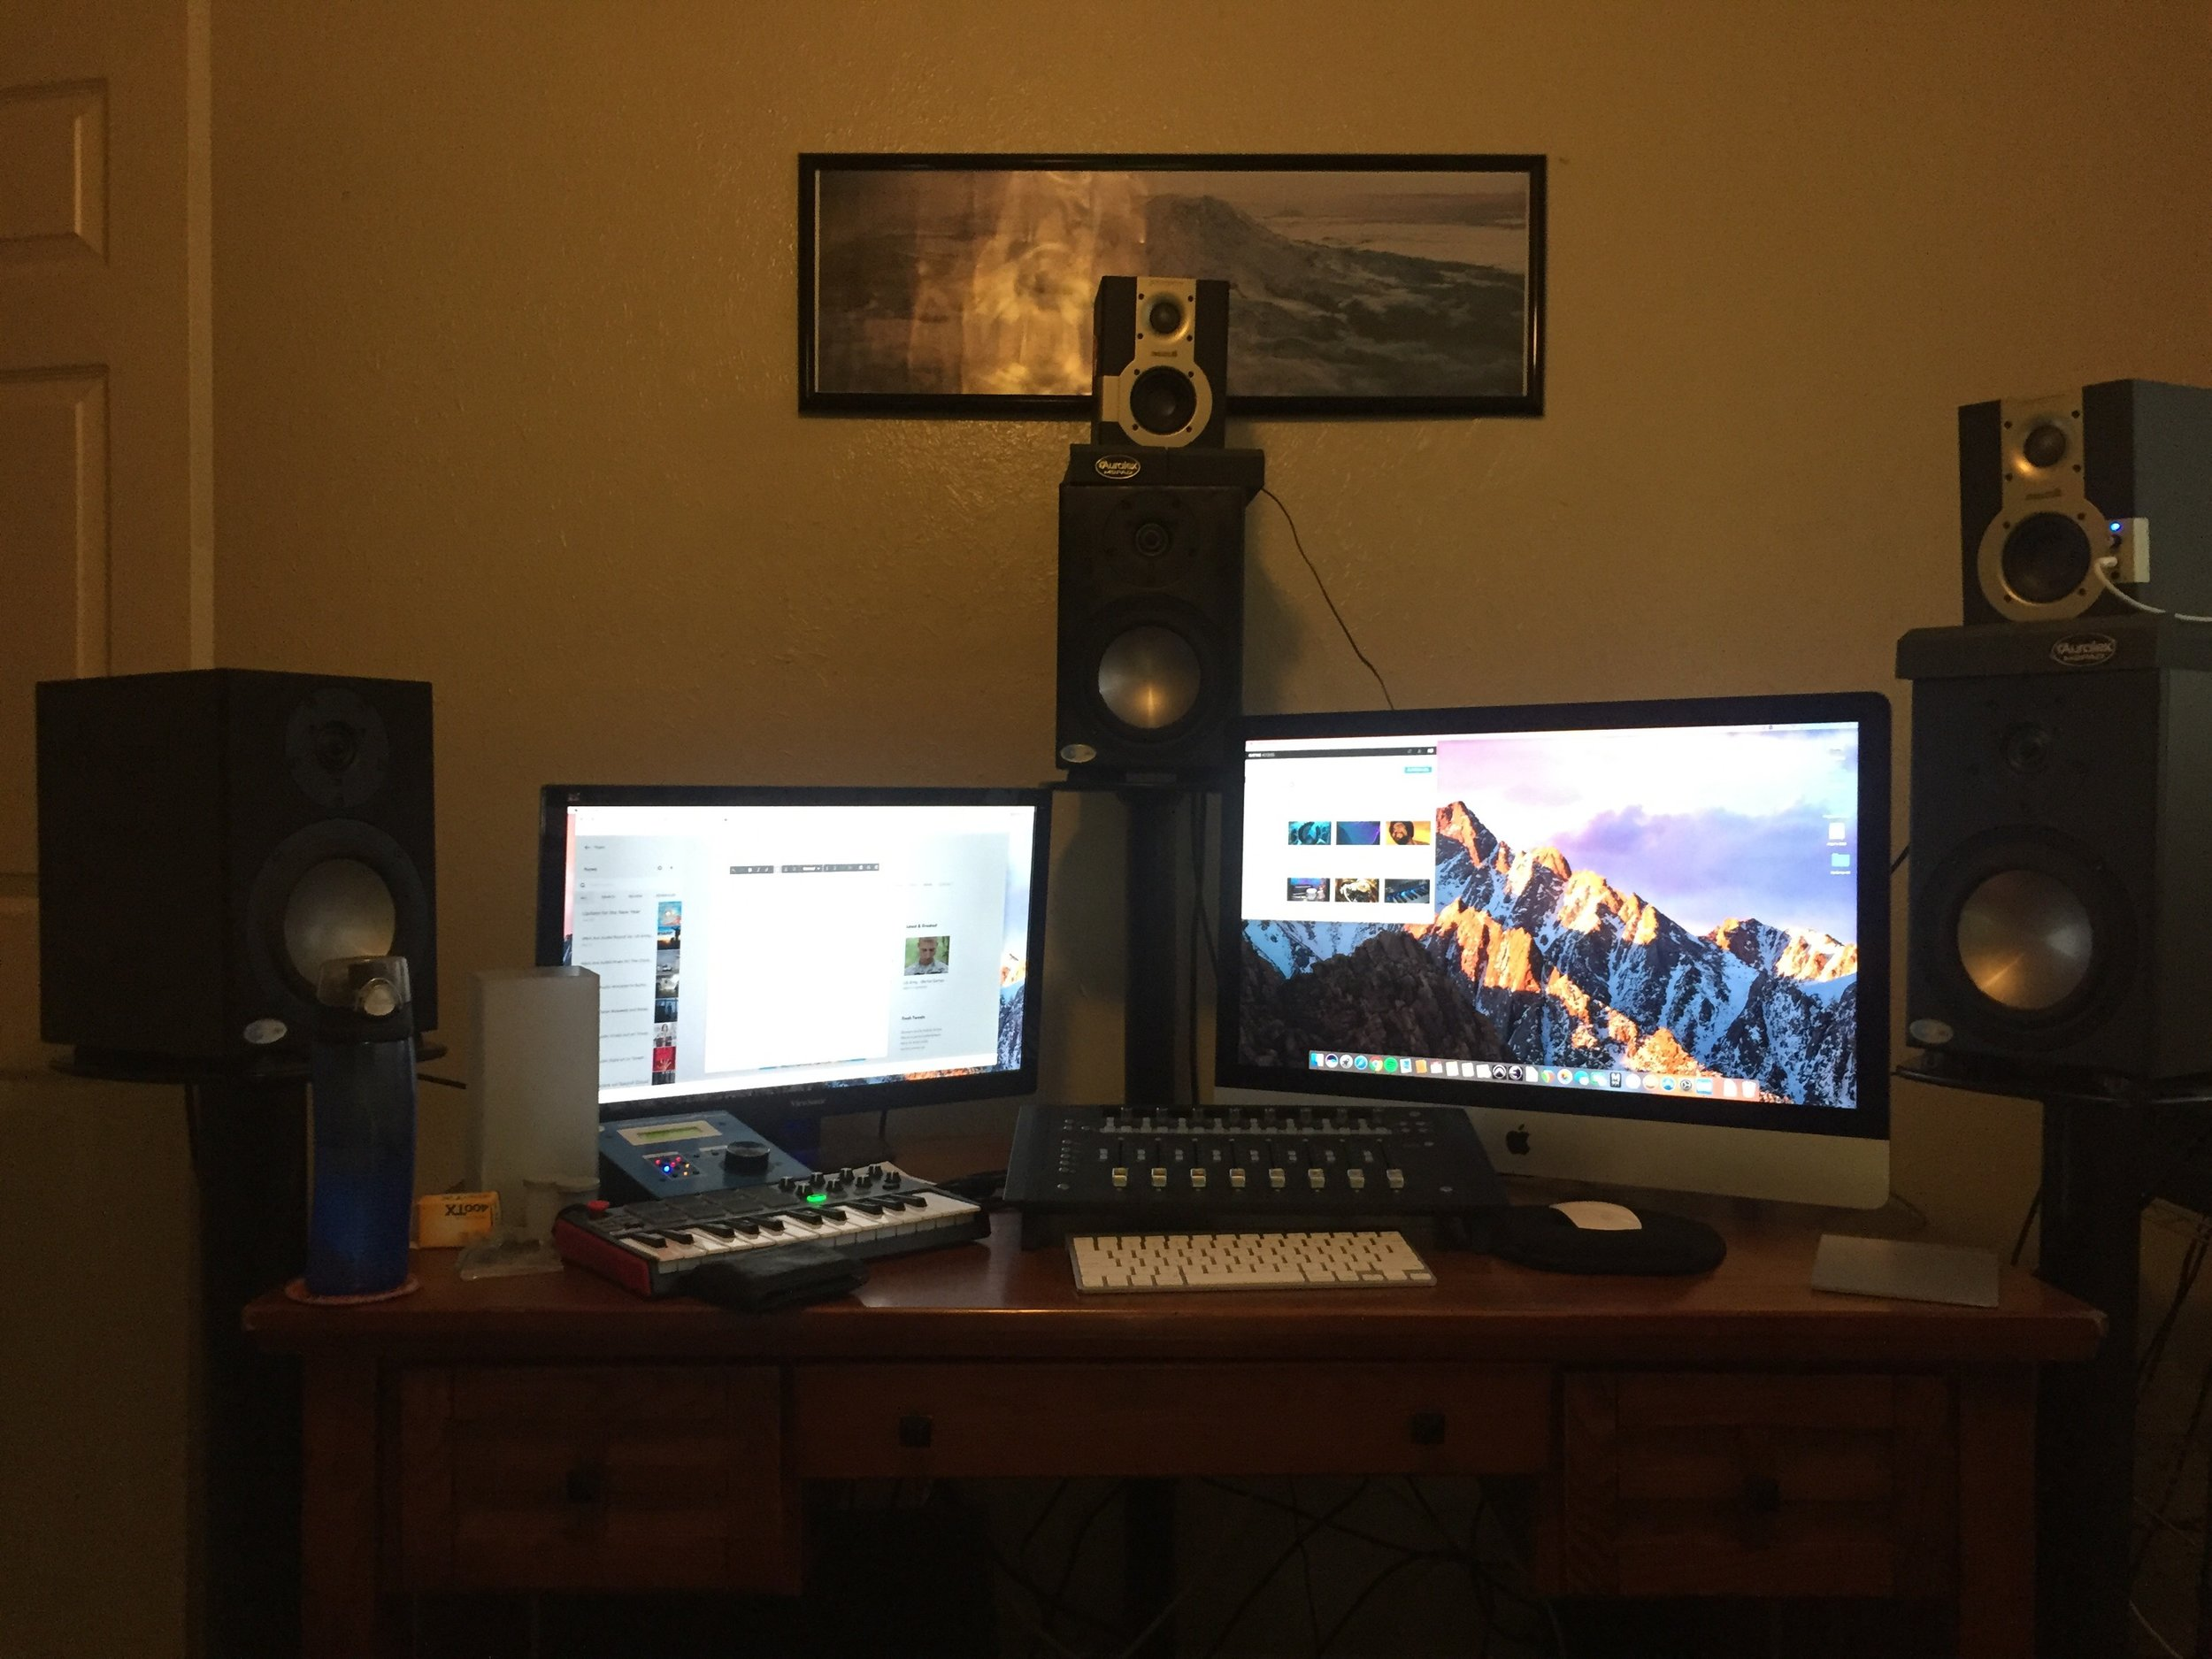 27 inch iMac, Akai MPK mini Keyboard, Avid Artist Mixer, 3 monitors up front by Blue Sky Audio, and 2 small listening back Samson Media One 3as (temporarily placed).  Not shown 2 JBLs for Left Surround and Right Surround and a monster UBL sub woofer.